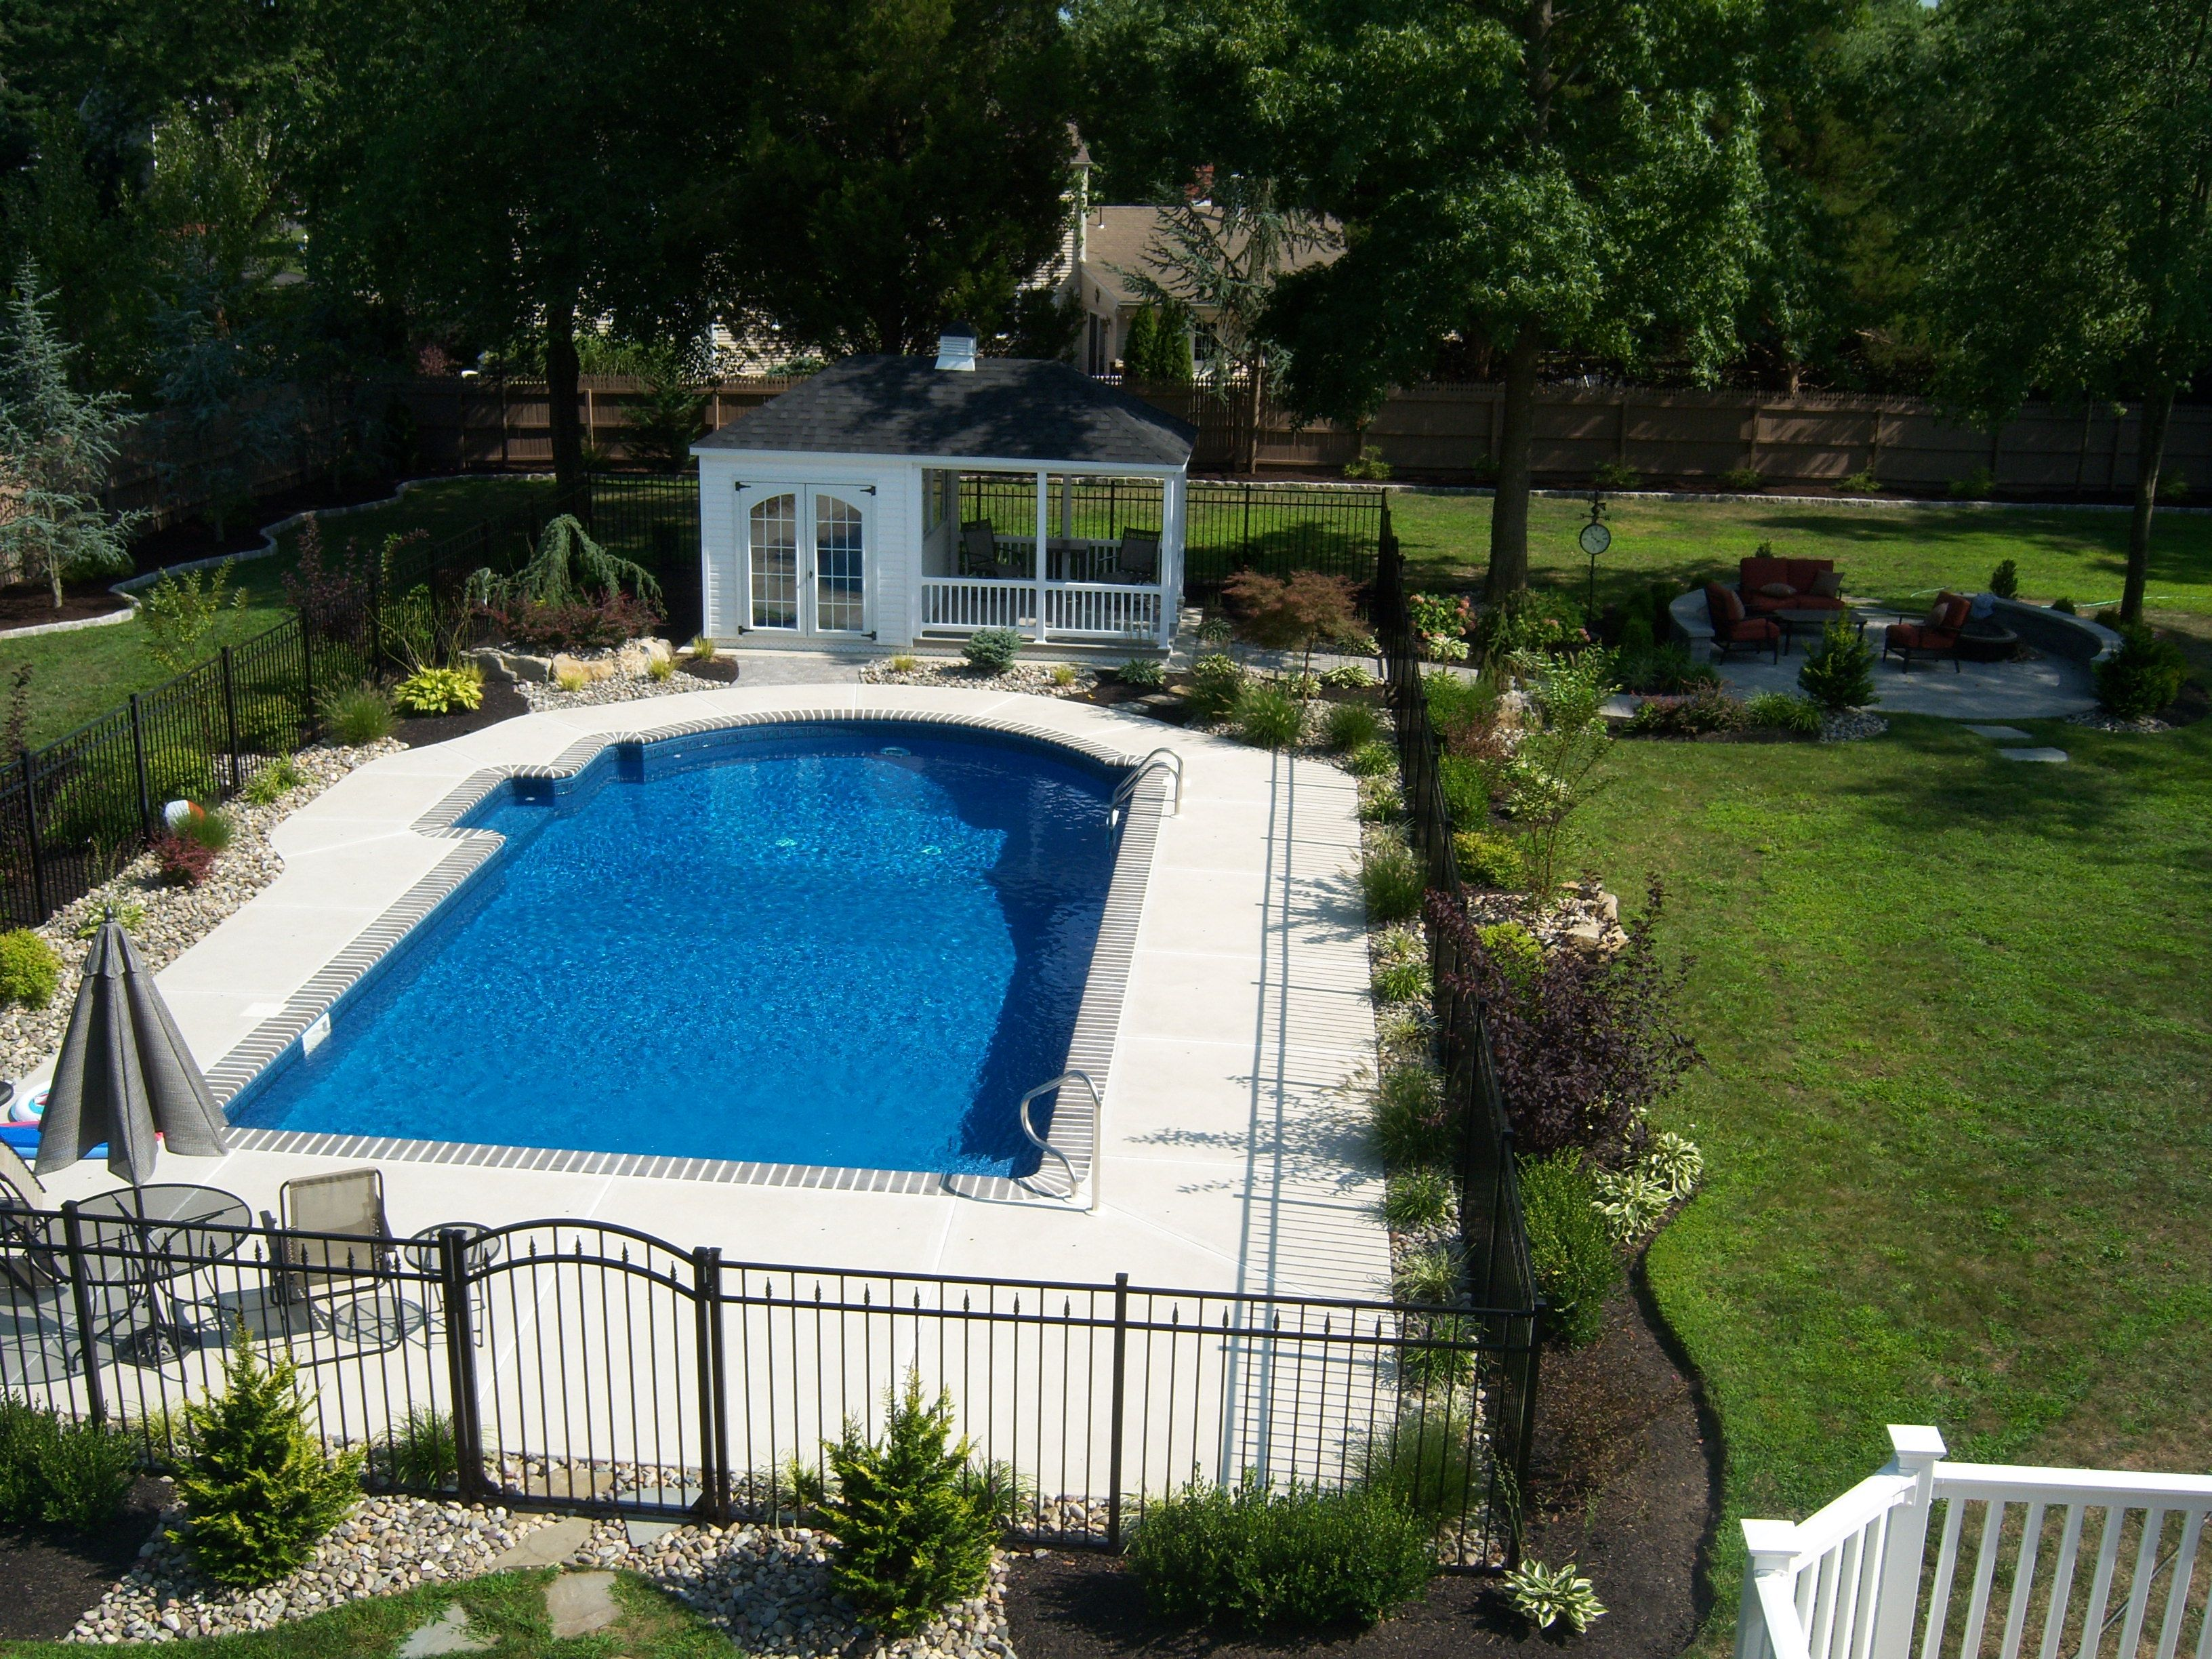 Rectangular Pool Landscape Designs landscaped pool pictures | and now that we're well into the spring